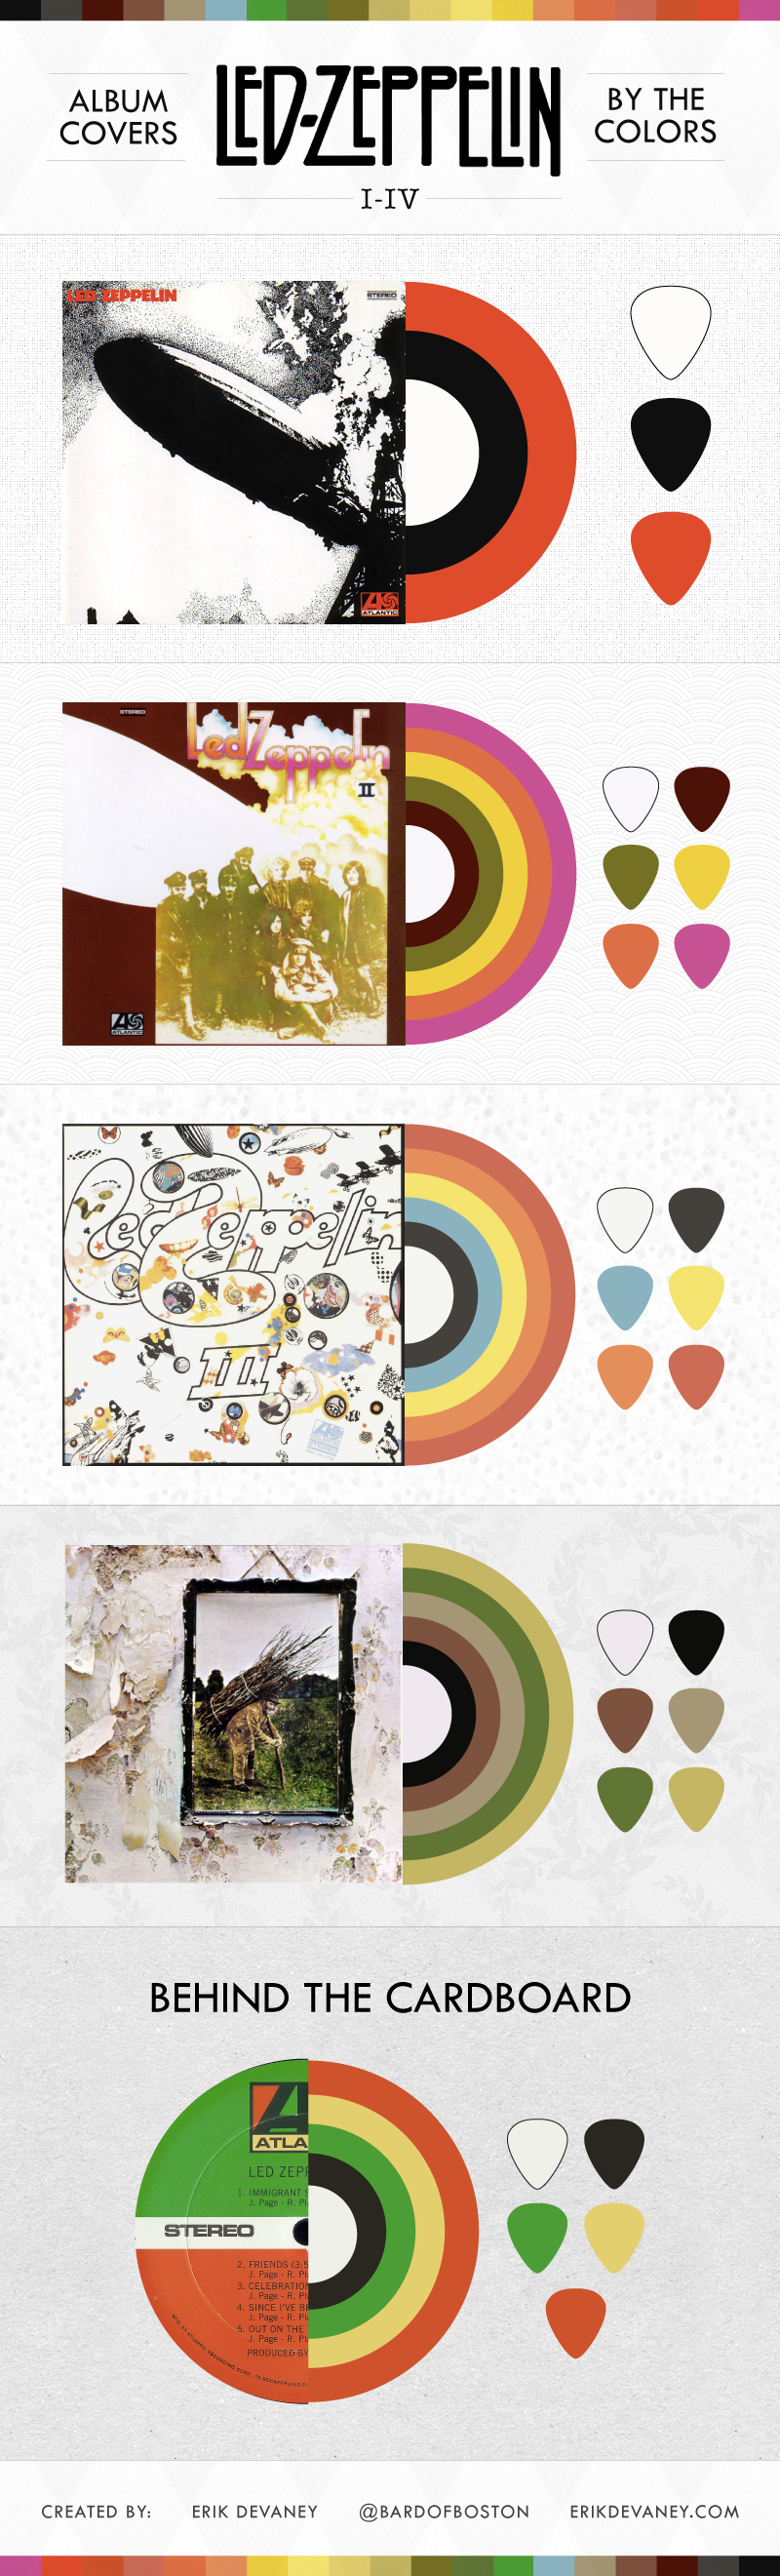 led zeppelin albums color palette – Erik Devaney